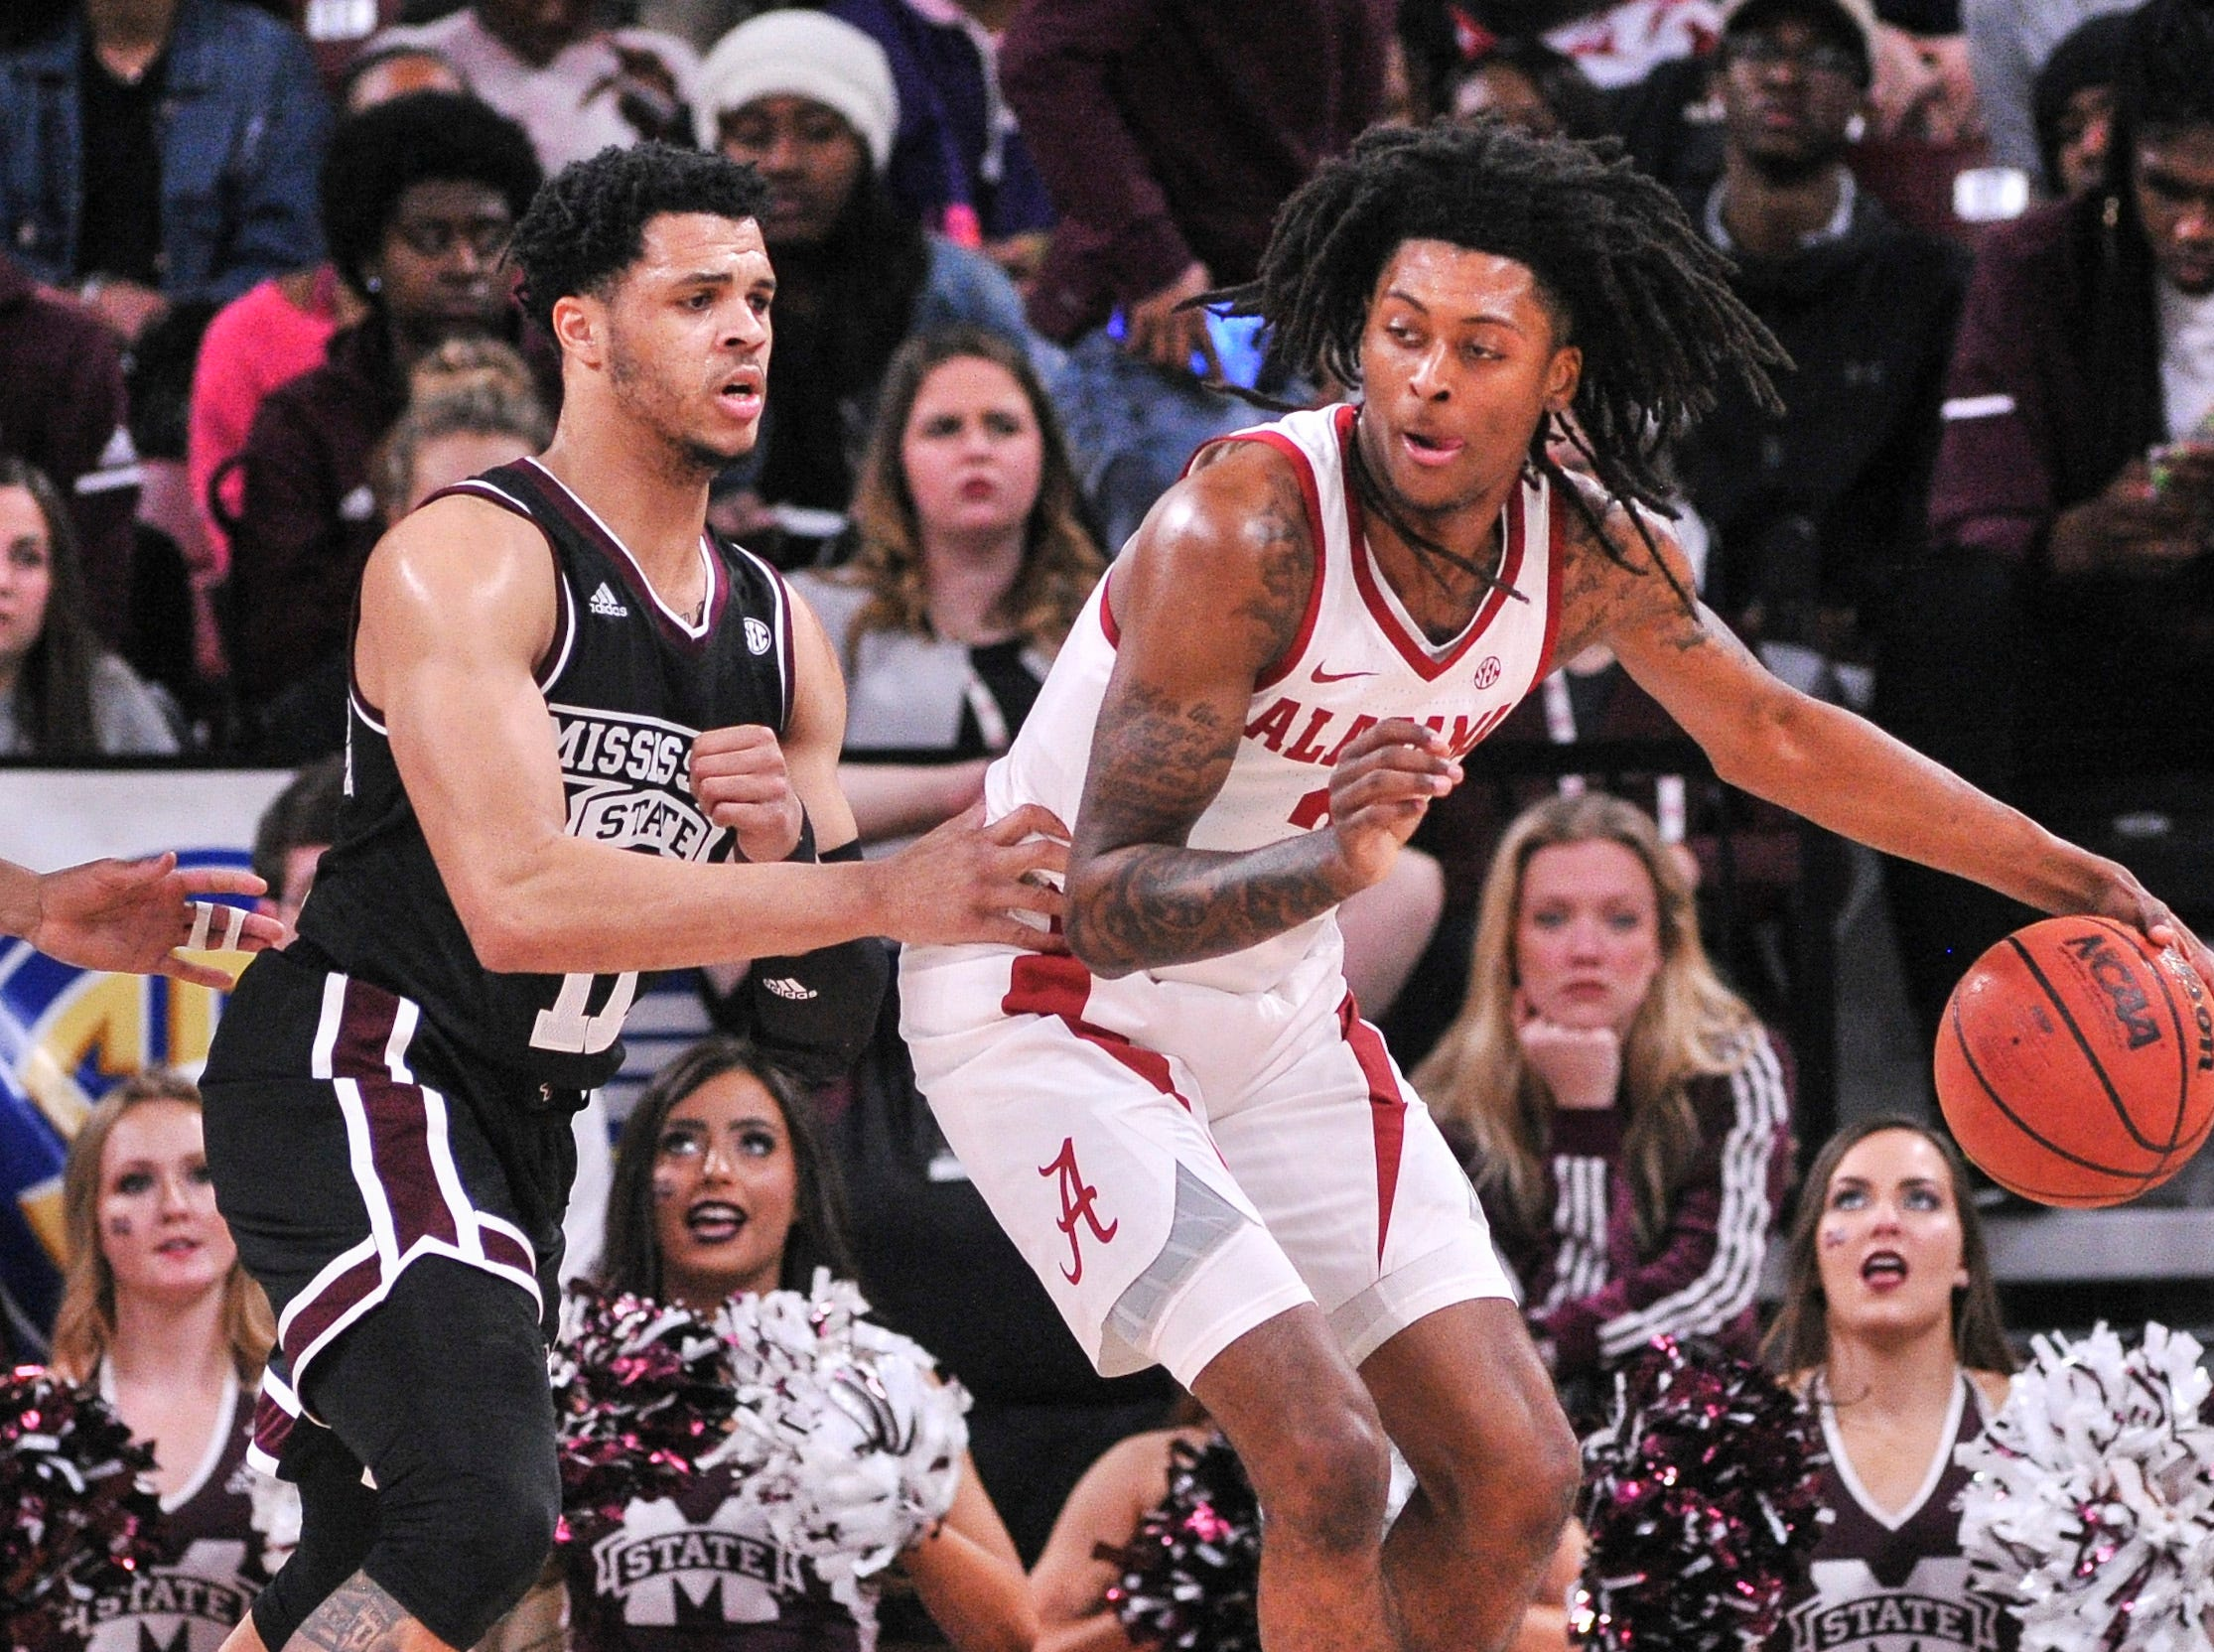 Feb 12, 2019; Starkville, MS, USA; Alabama Crimson Tide guard John Petty (23) handles the ball against Mississippi State Bulldogs guard Quinndary Weatherspoon (11) during the first half at Humphrey Coliseum. Mandatory Credit: Justin Ford-USA TODAY Sports